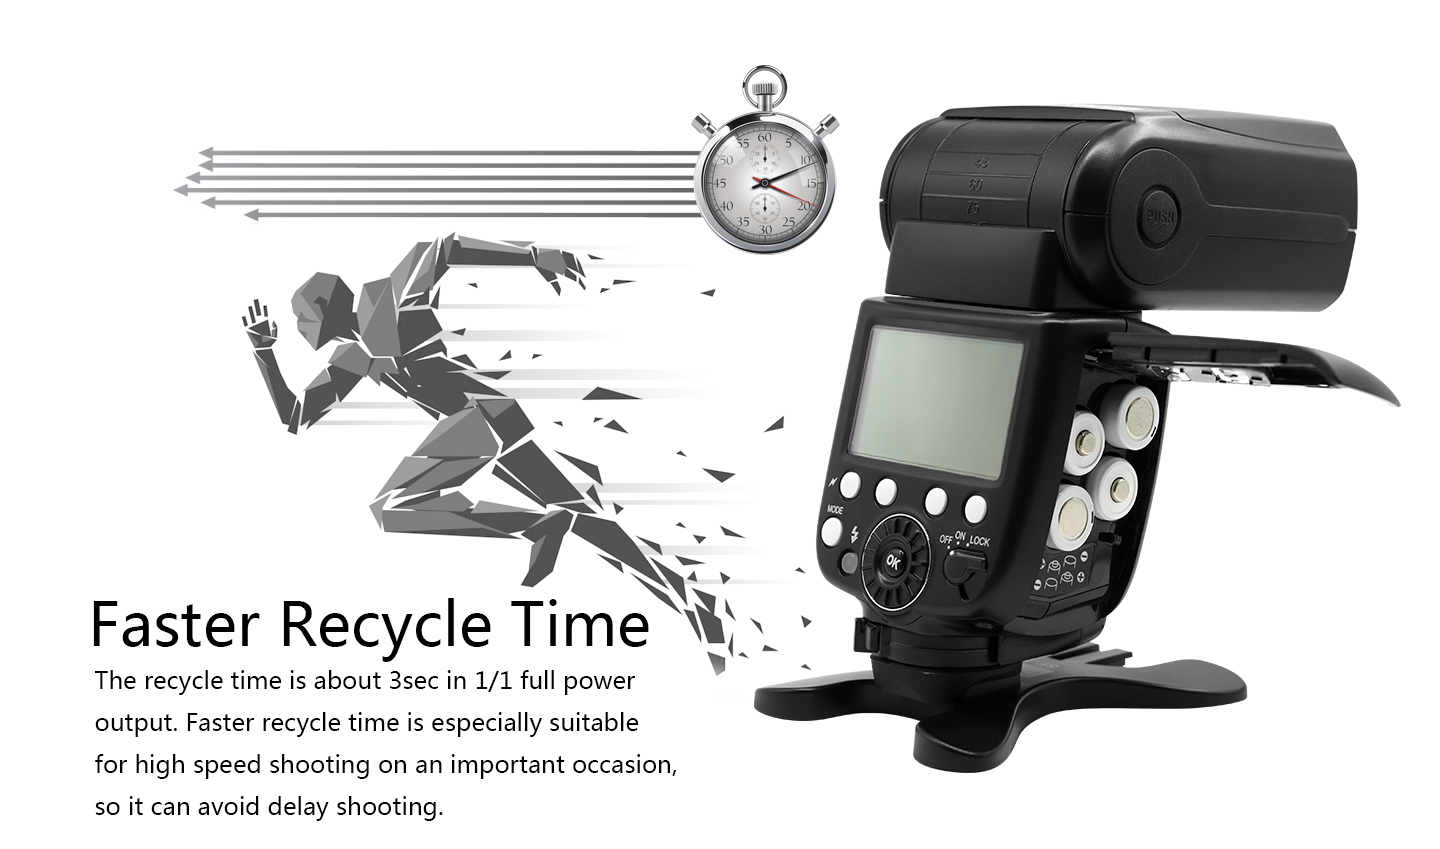 Faster Recycle Time